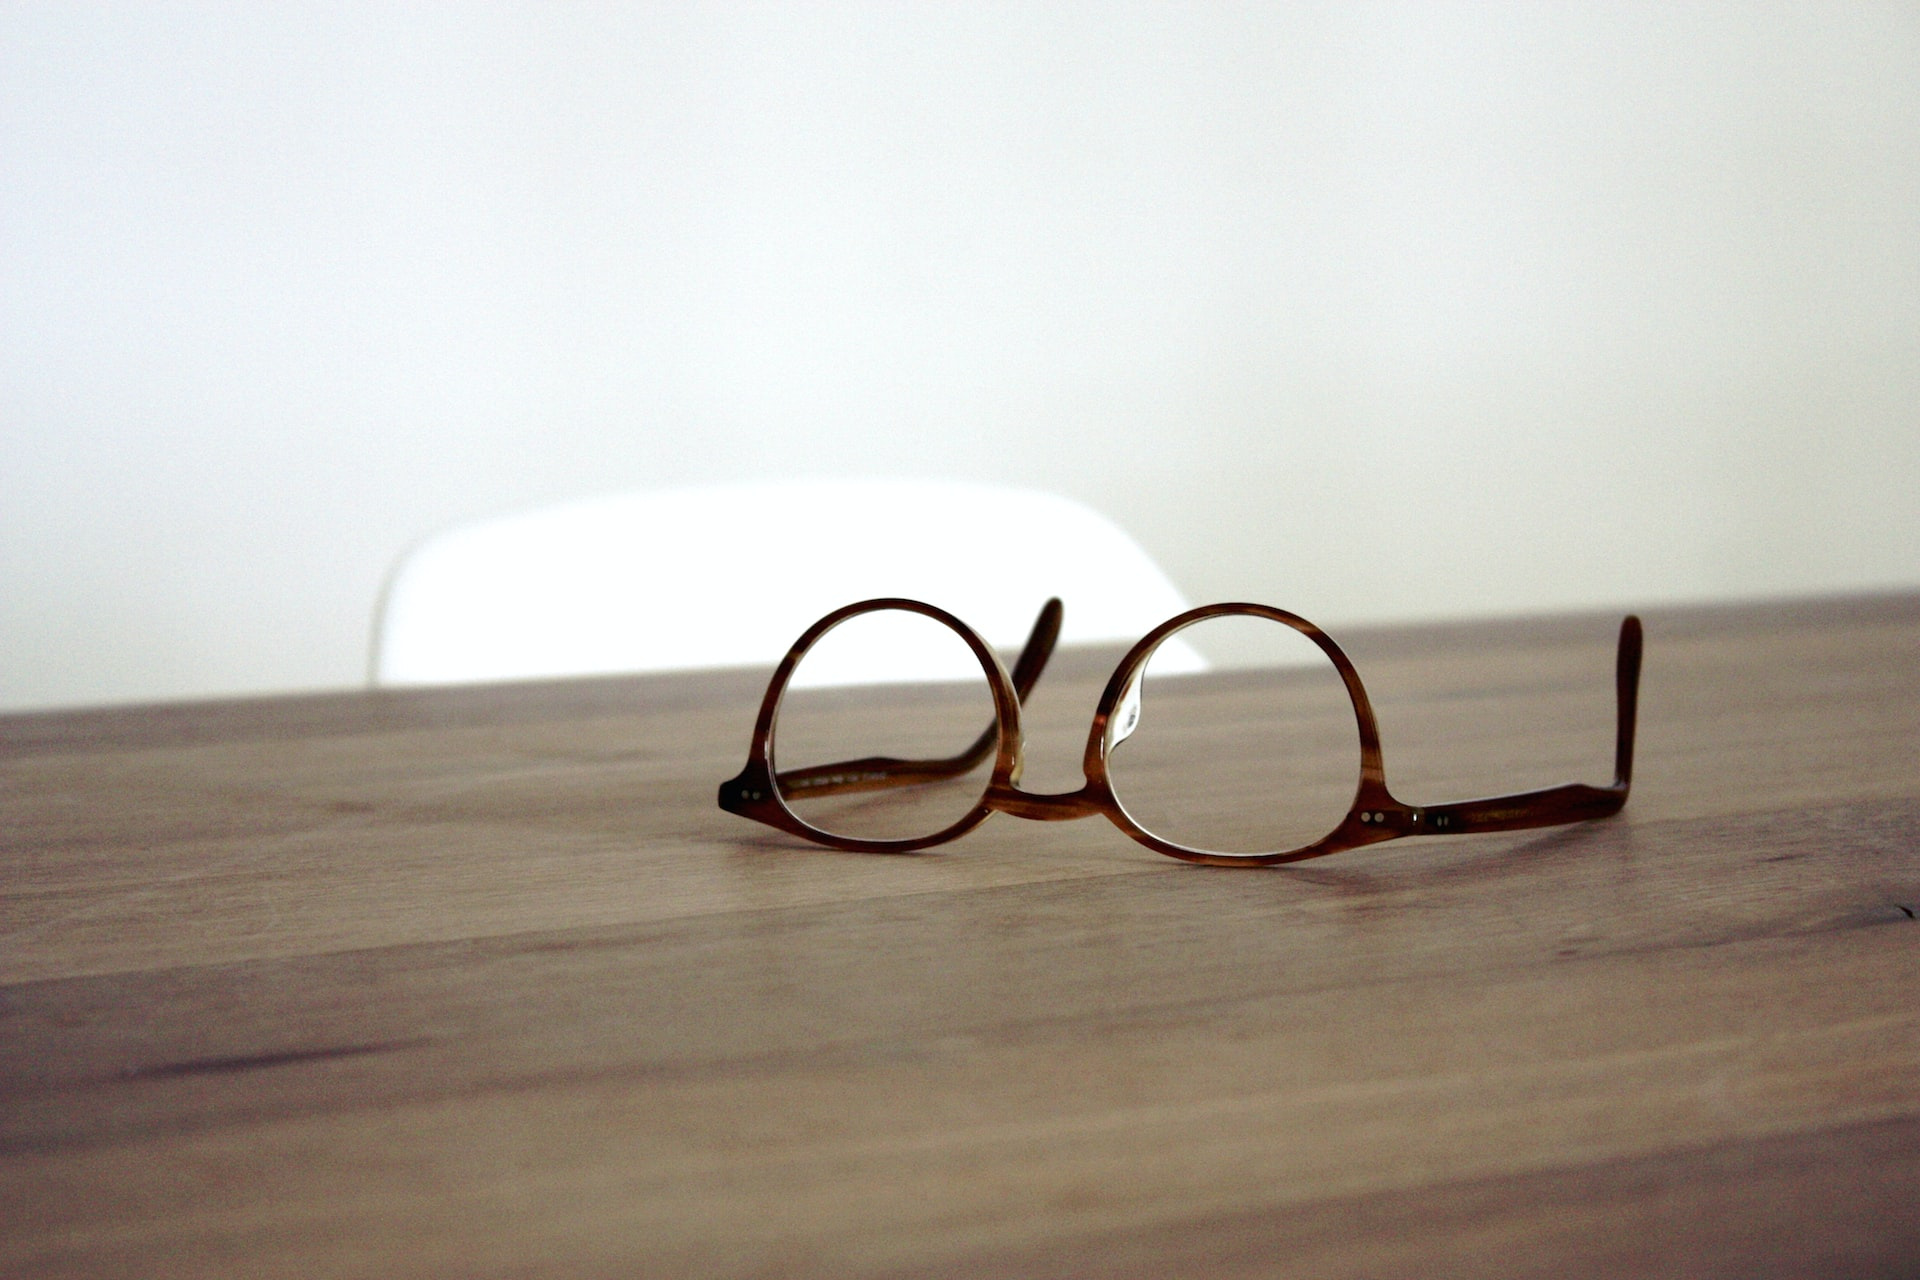 A pair of glasses on a wooden surface